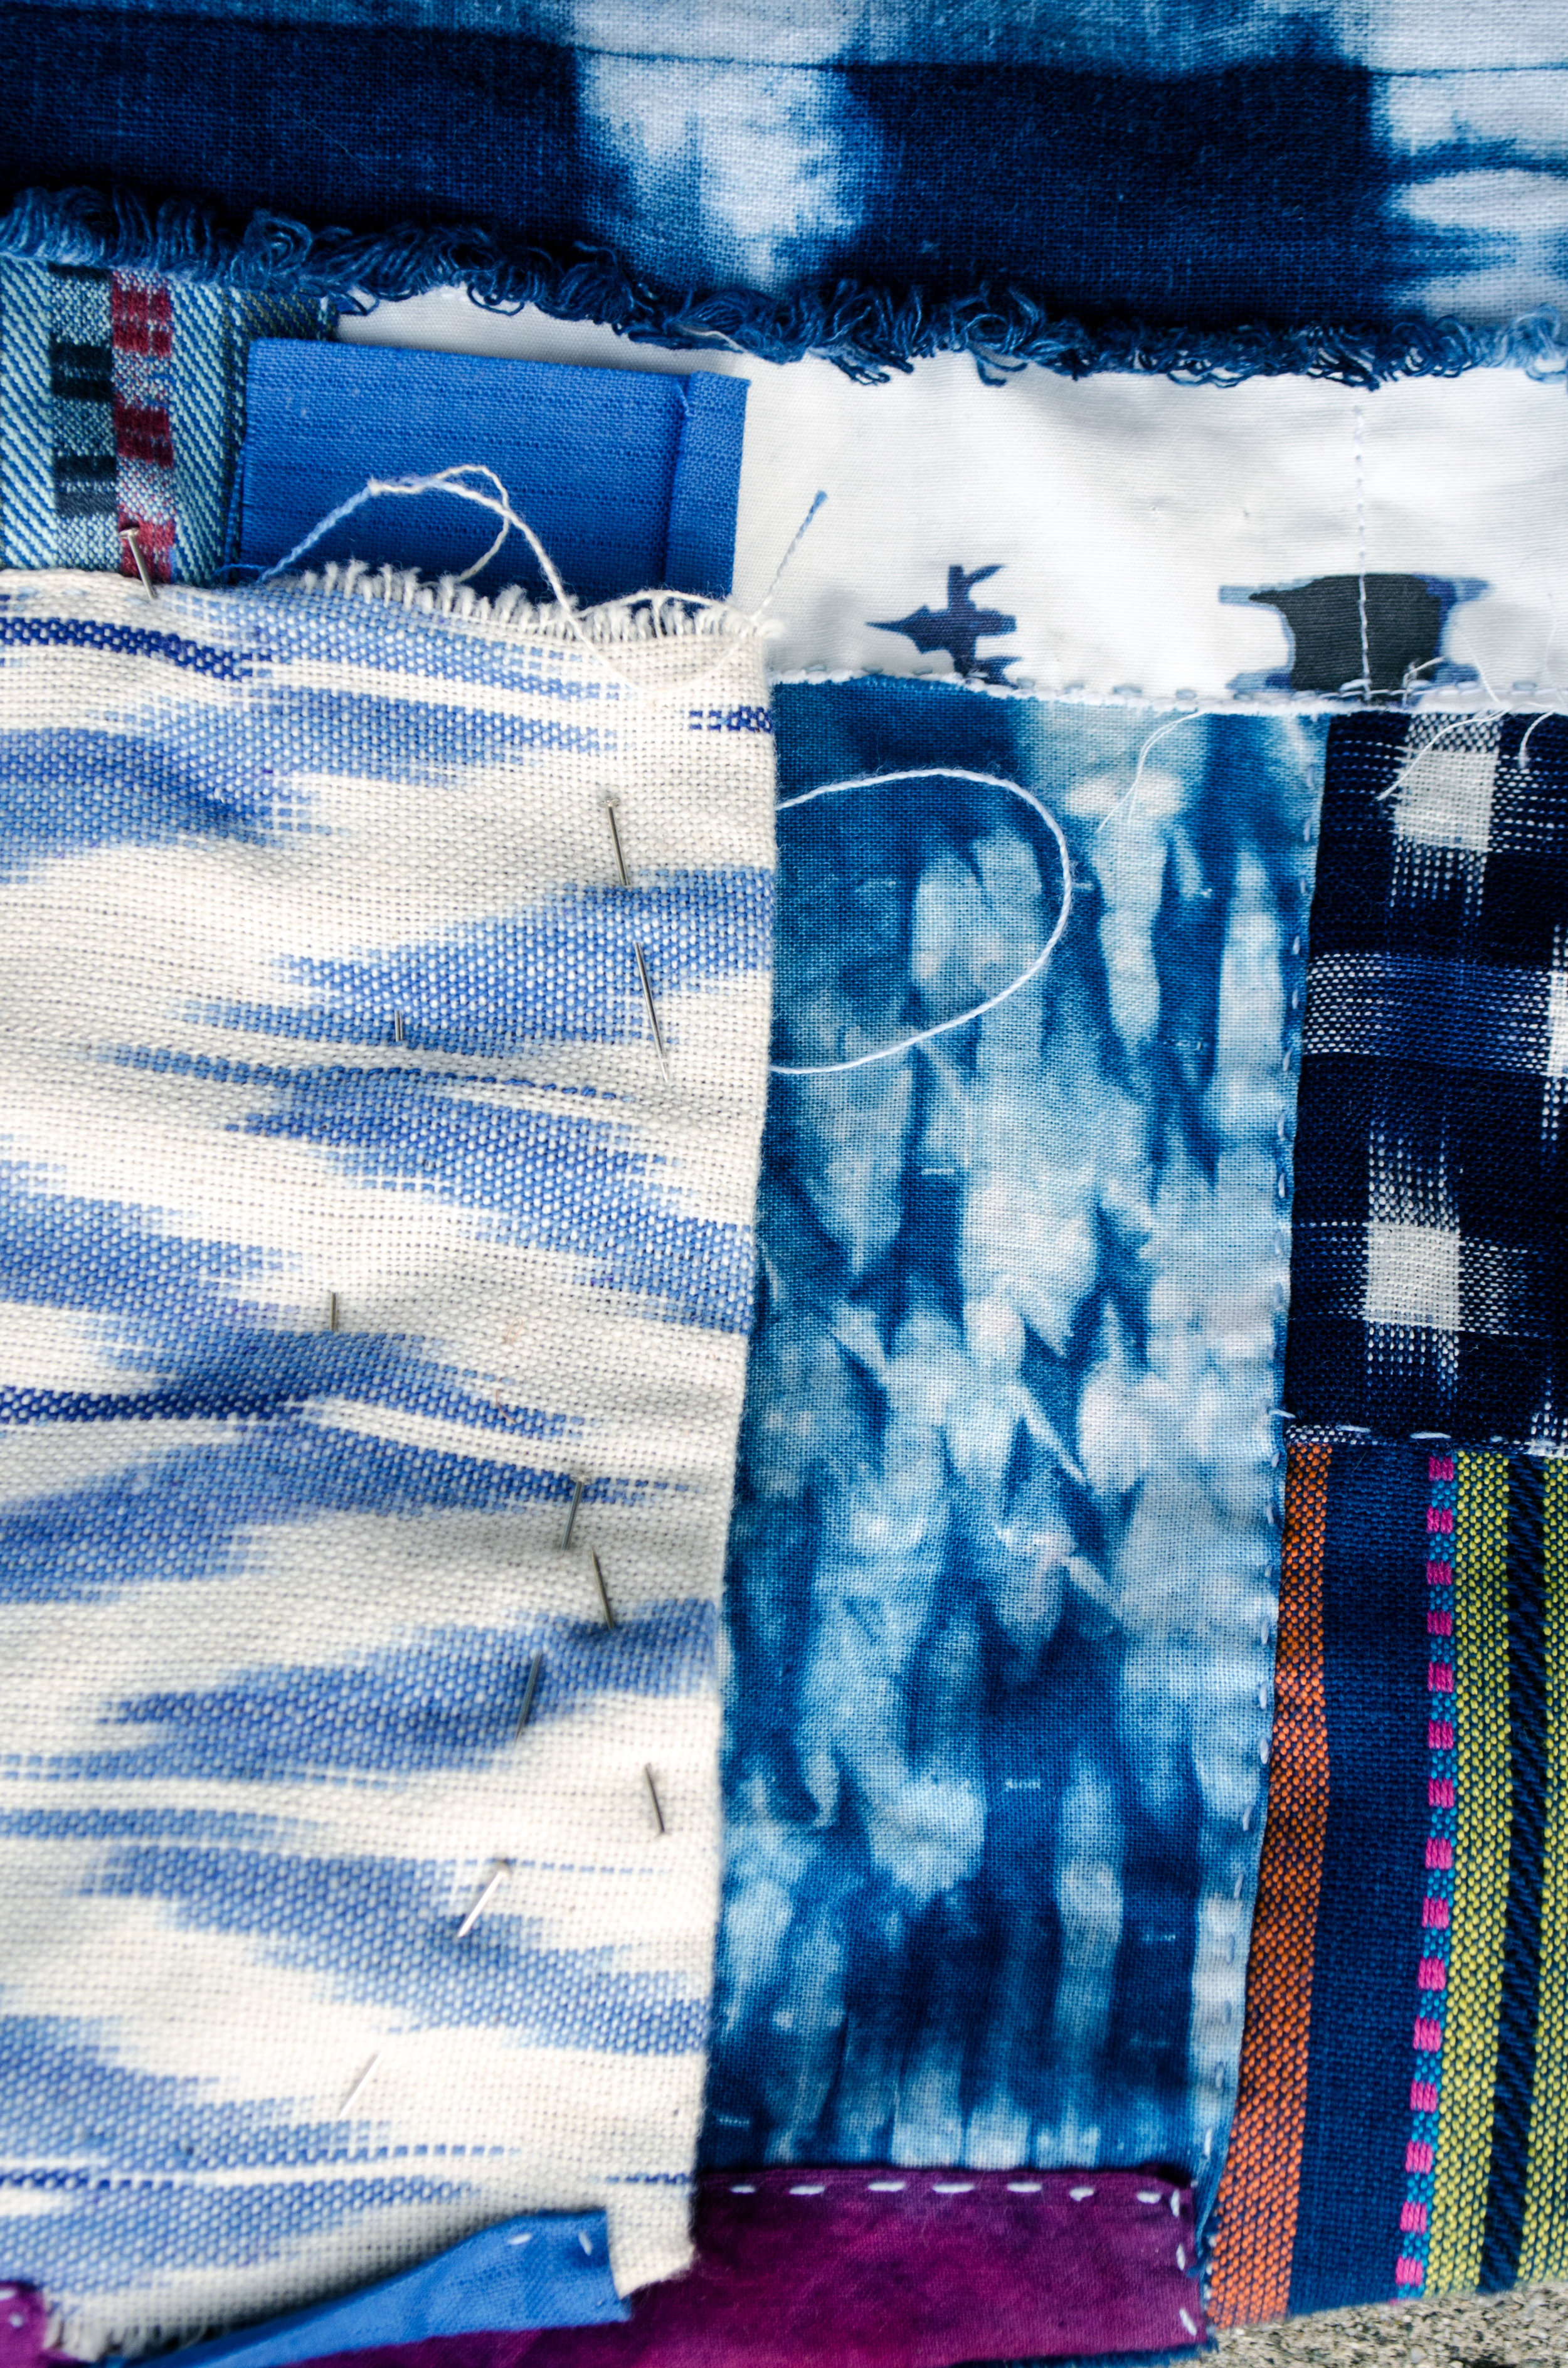 Shibori and ikat fabrics pieced, patched and stitched in the boro tradition